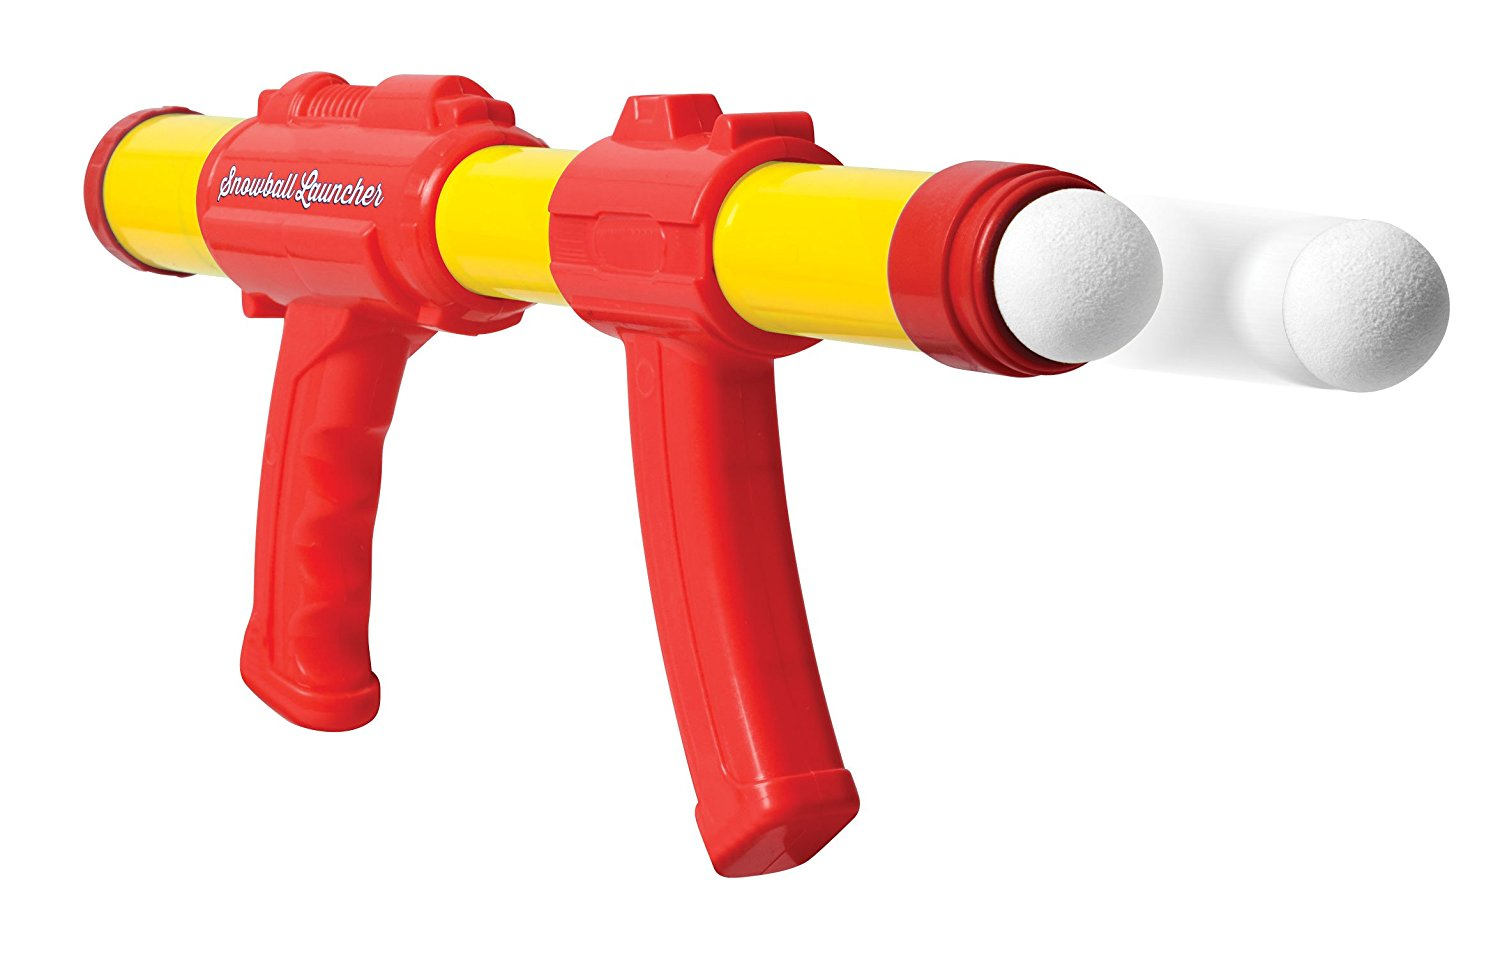 Snowball Blaster Launcher Shooter With Target and 8 Snow Balls - Air Pump Pressure Gun Blasts Launches Shoots Snowballs - Kids Children Boys Girls Science Snowball Fight Top Toy by Perfect Life Ideas